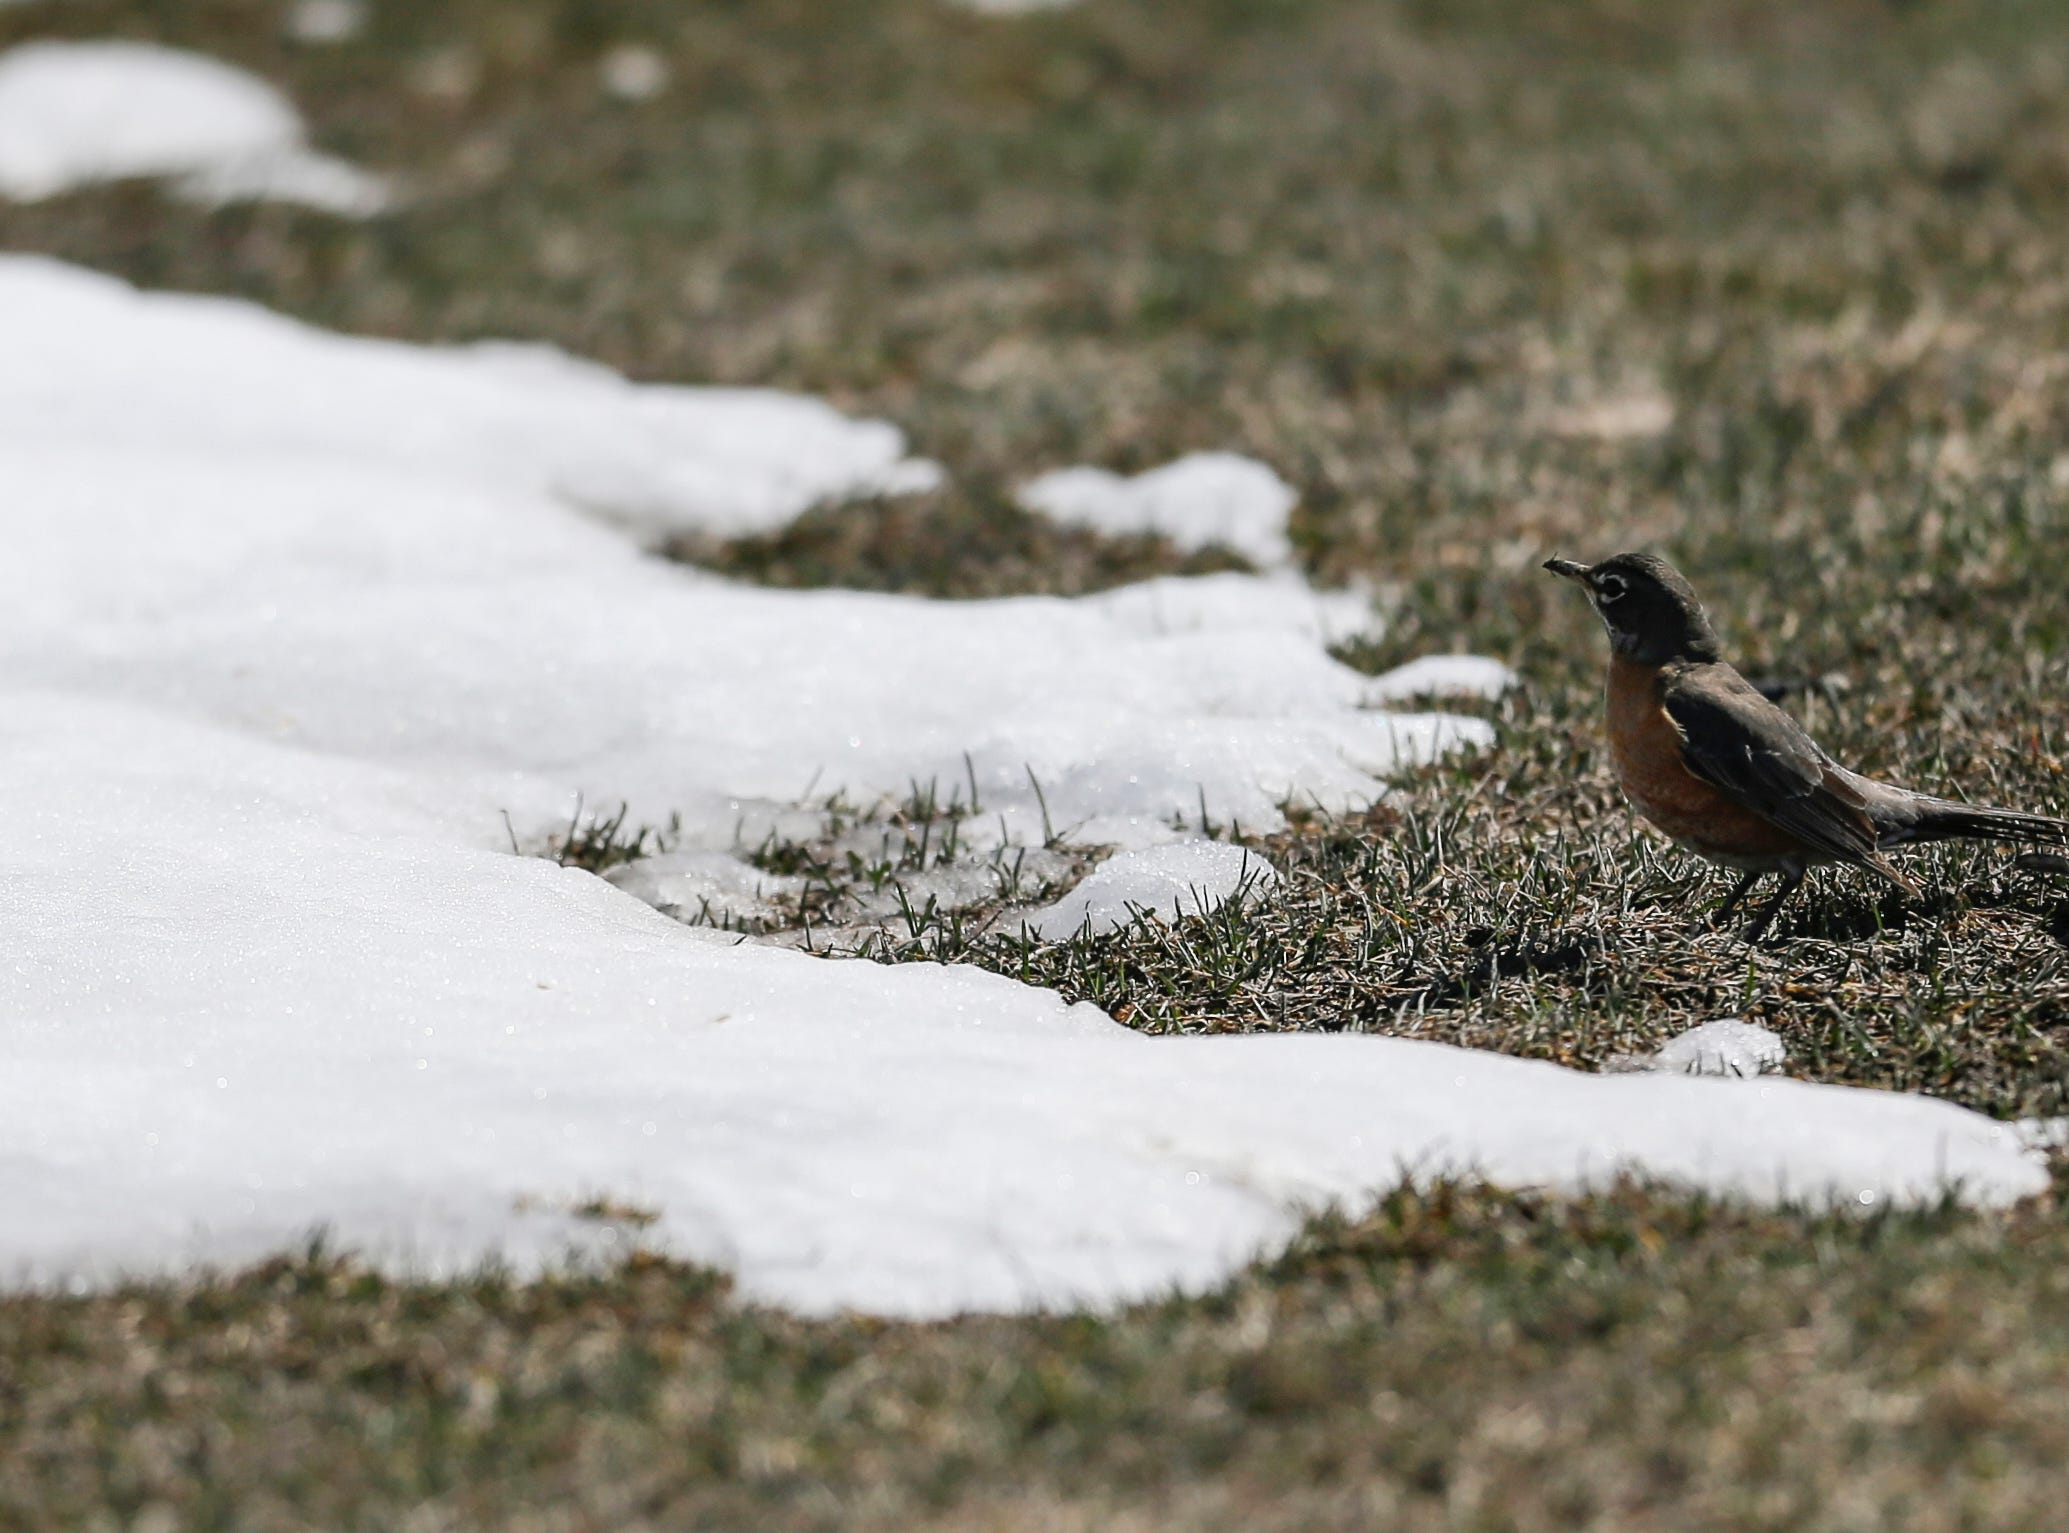 A robin stands in the grass as seasonal temps melt snow and ice brought by winter storm Evelyn Thursday, Apr. 19, 2018, in Manitowoc, Wis. Josh Clark/USA TODAY NETWORK-Wisconsin